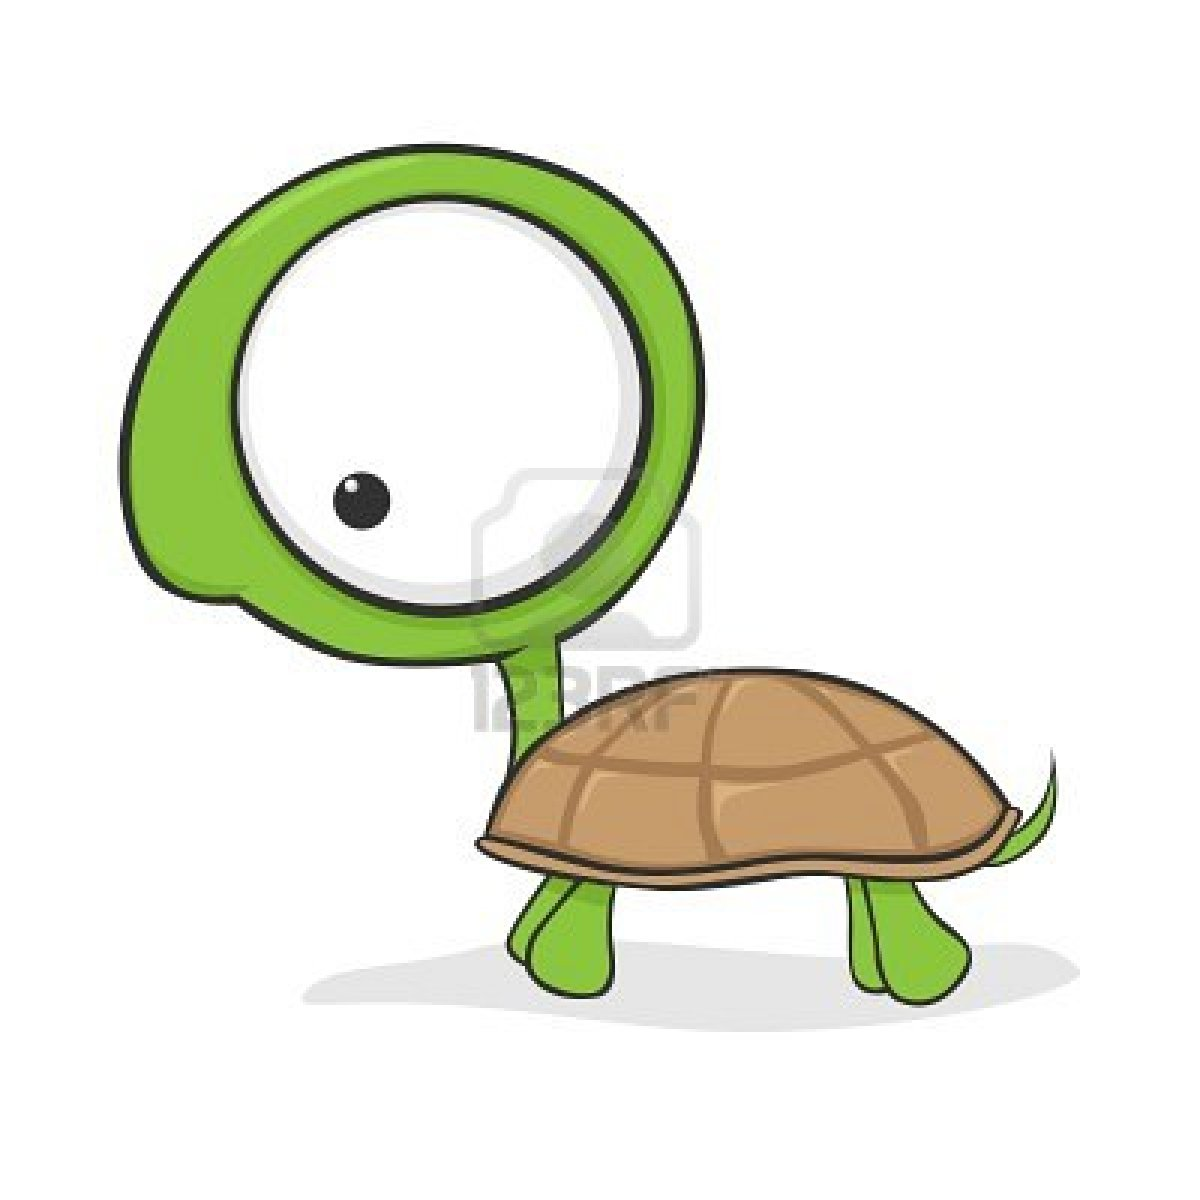 1200x1200 Cute Cartoon Turtle With Huge Eyes Stock Photo Illustrations